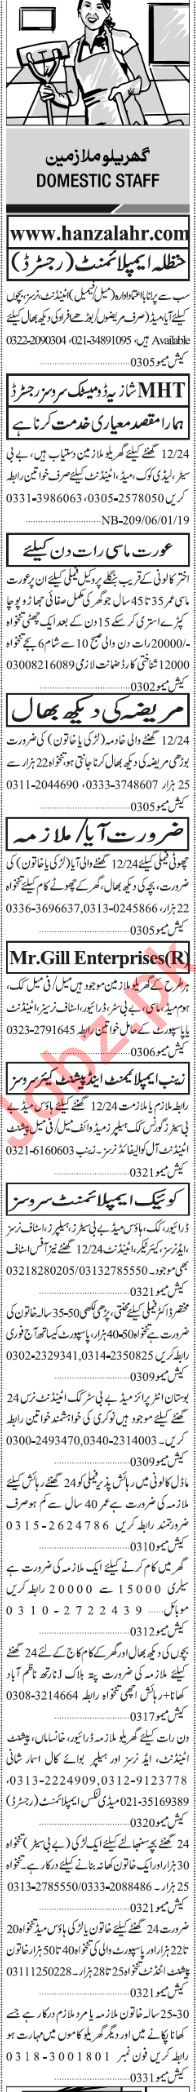 Jang Sunday Classified Ads 6th Jan 2019 for Domestic Staff